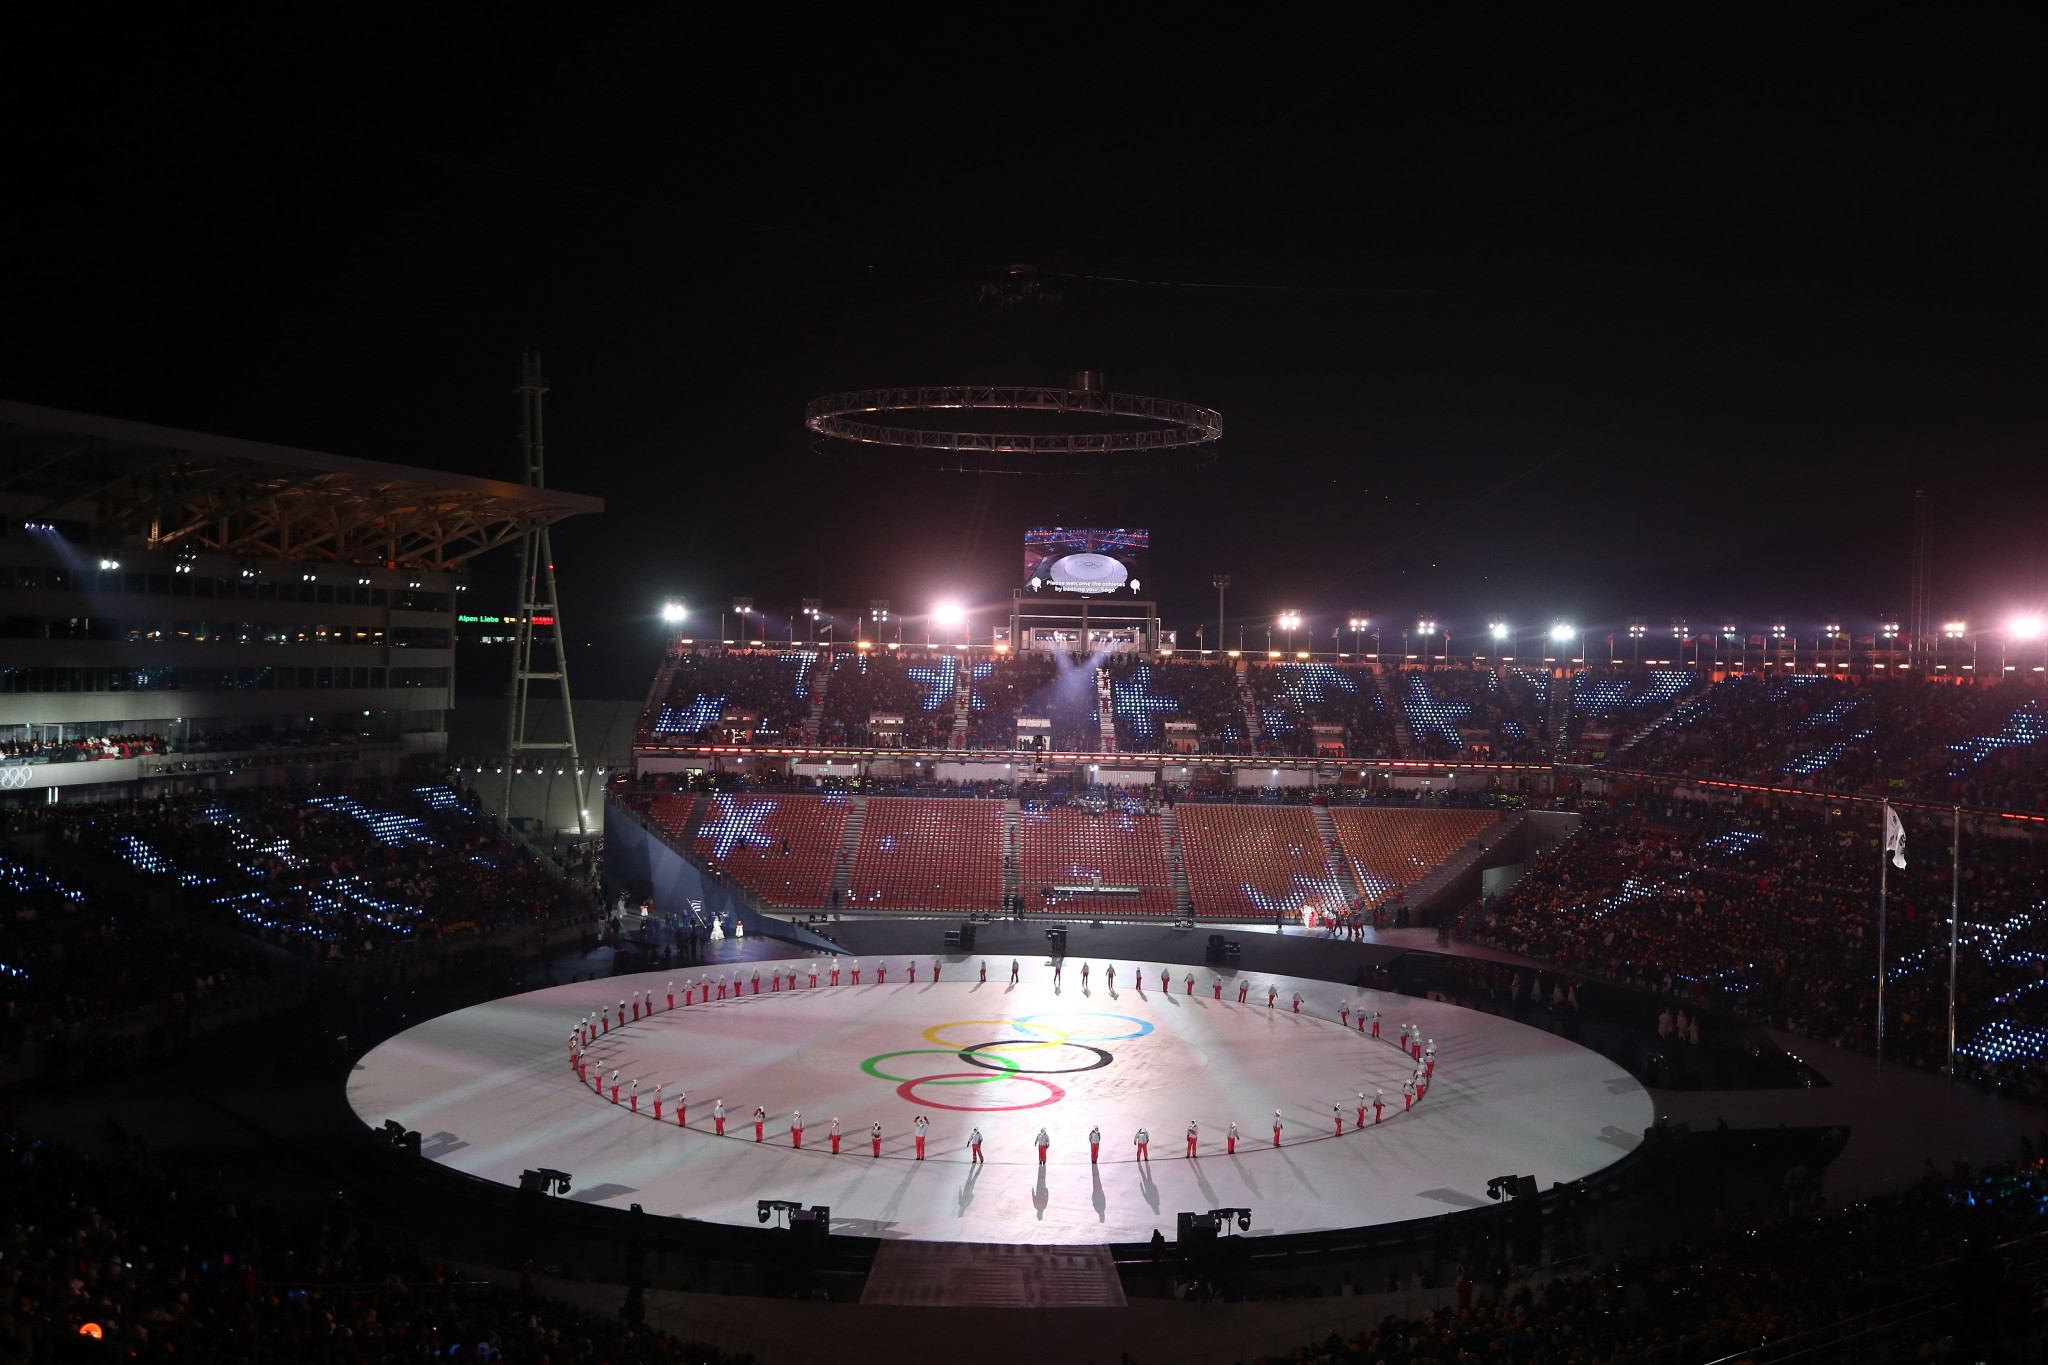 Pyeongchang 2018 launch investigation after fears of cyber-attack during Opening Ceremony